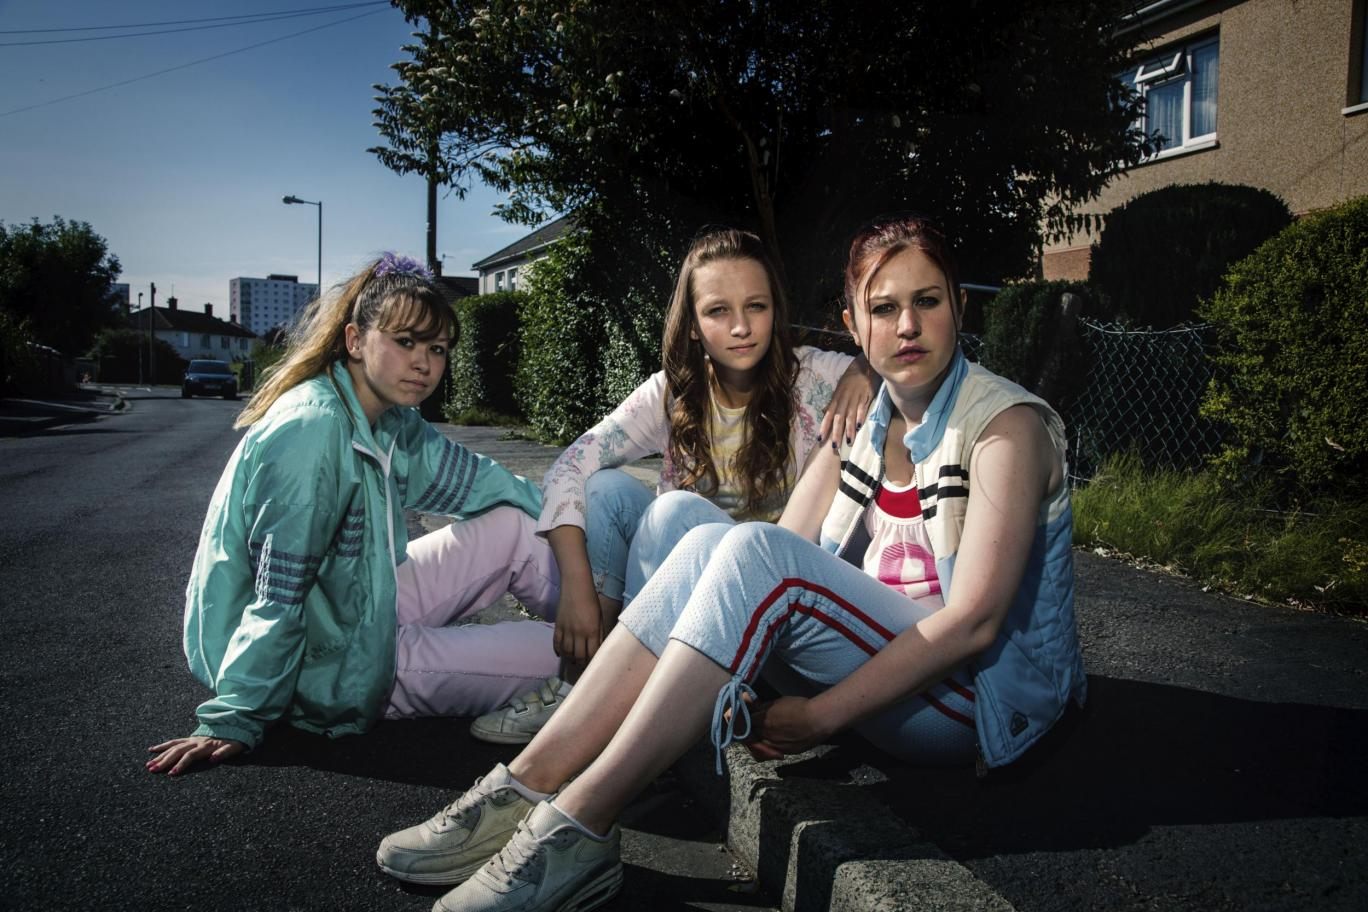 Emotional viewers thank BBC for eye-opening drama Three Girls